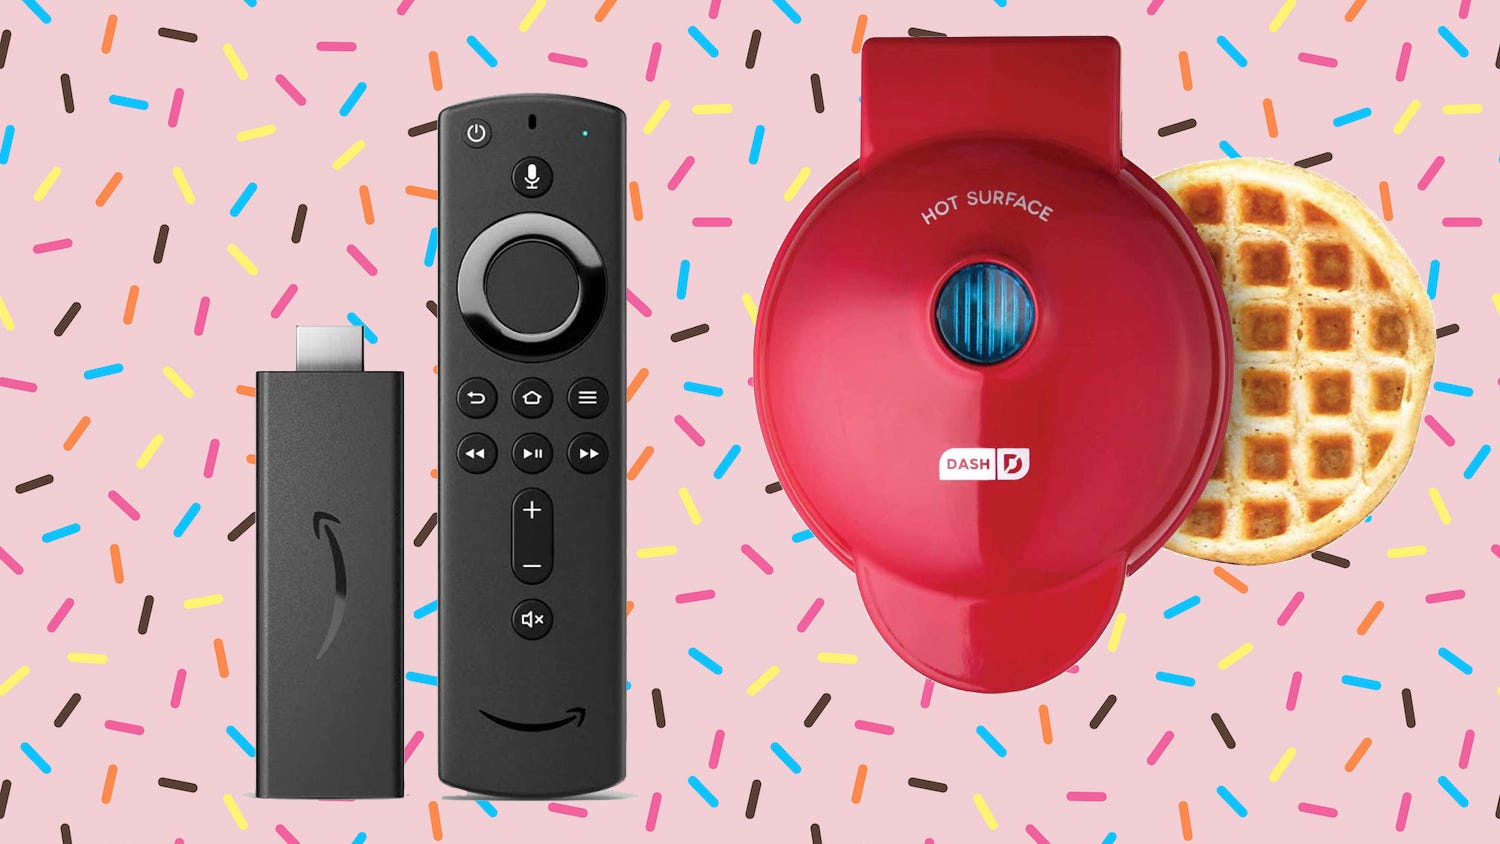 Save big on the Dash waffle maker and Amazon Fire Stick Lite